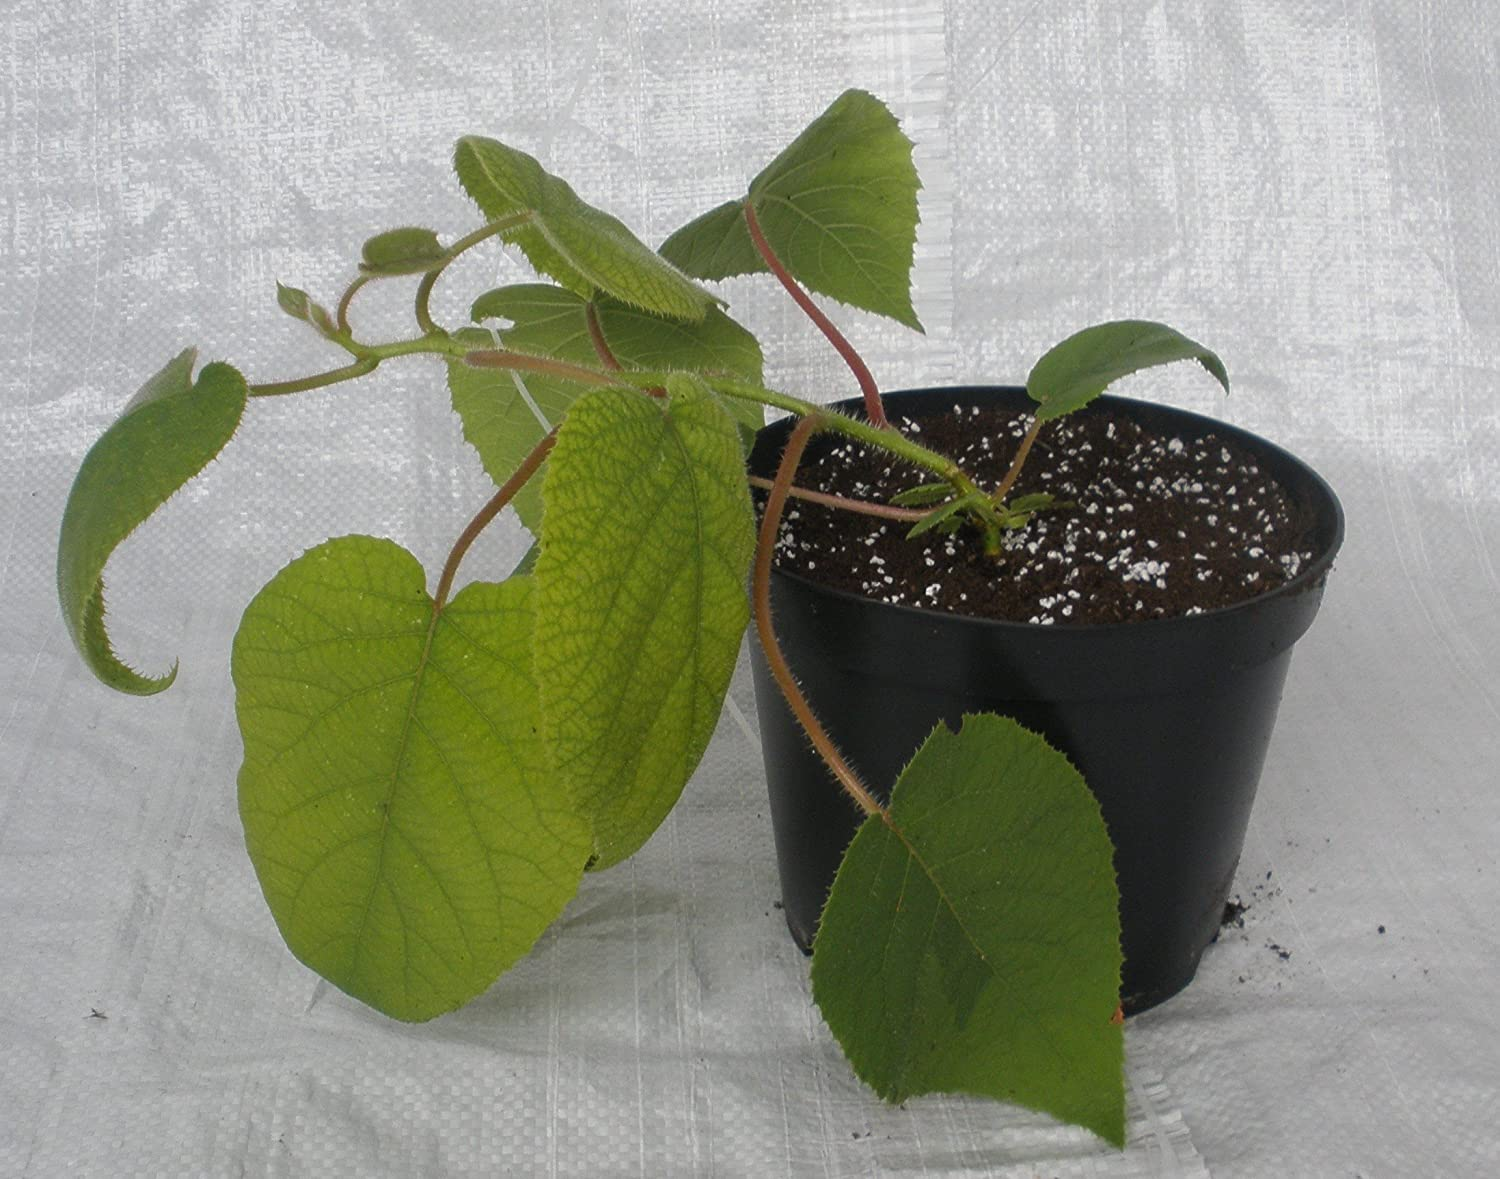 Kiwi Fruit, Chinese Gooseberry, Actinidia chinensis in 1/2 Litre Pots Plugsnplants